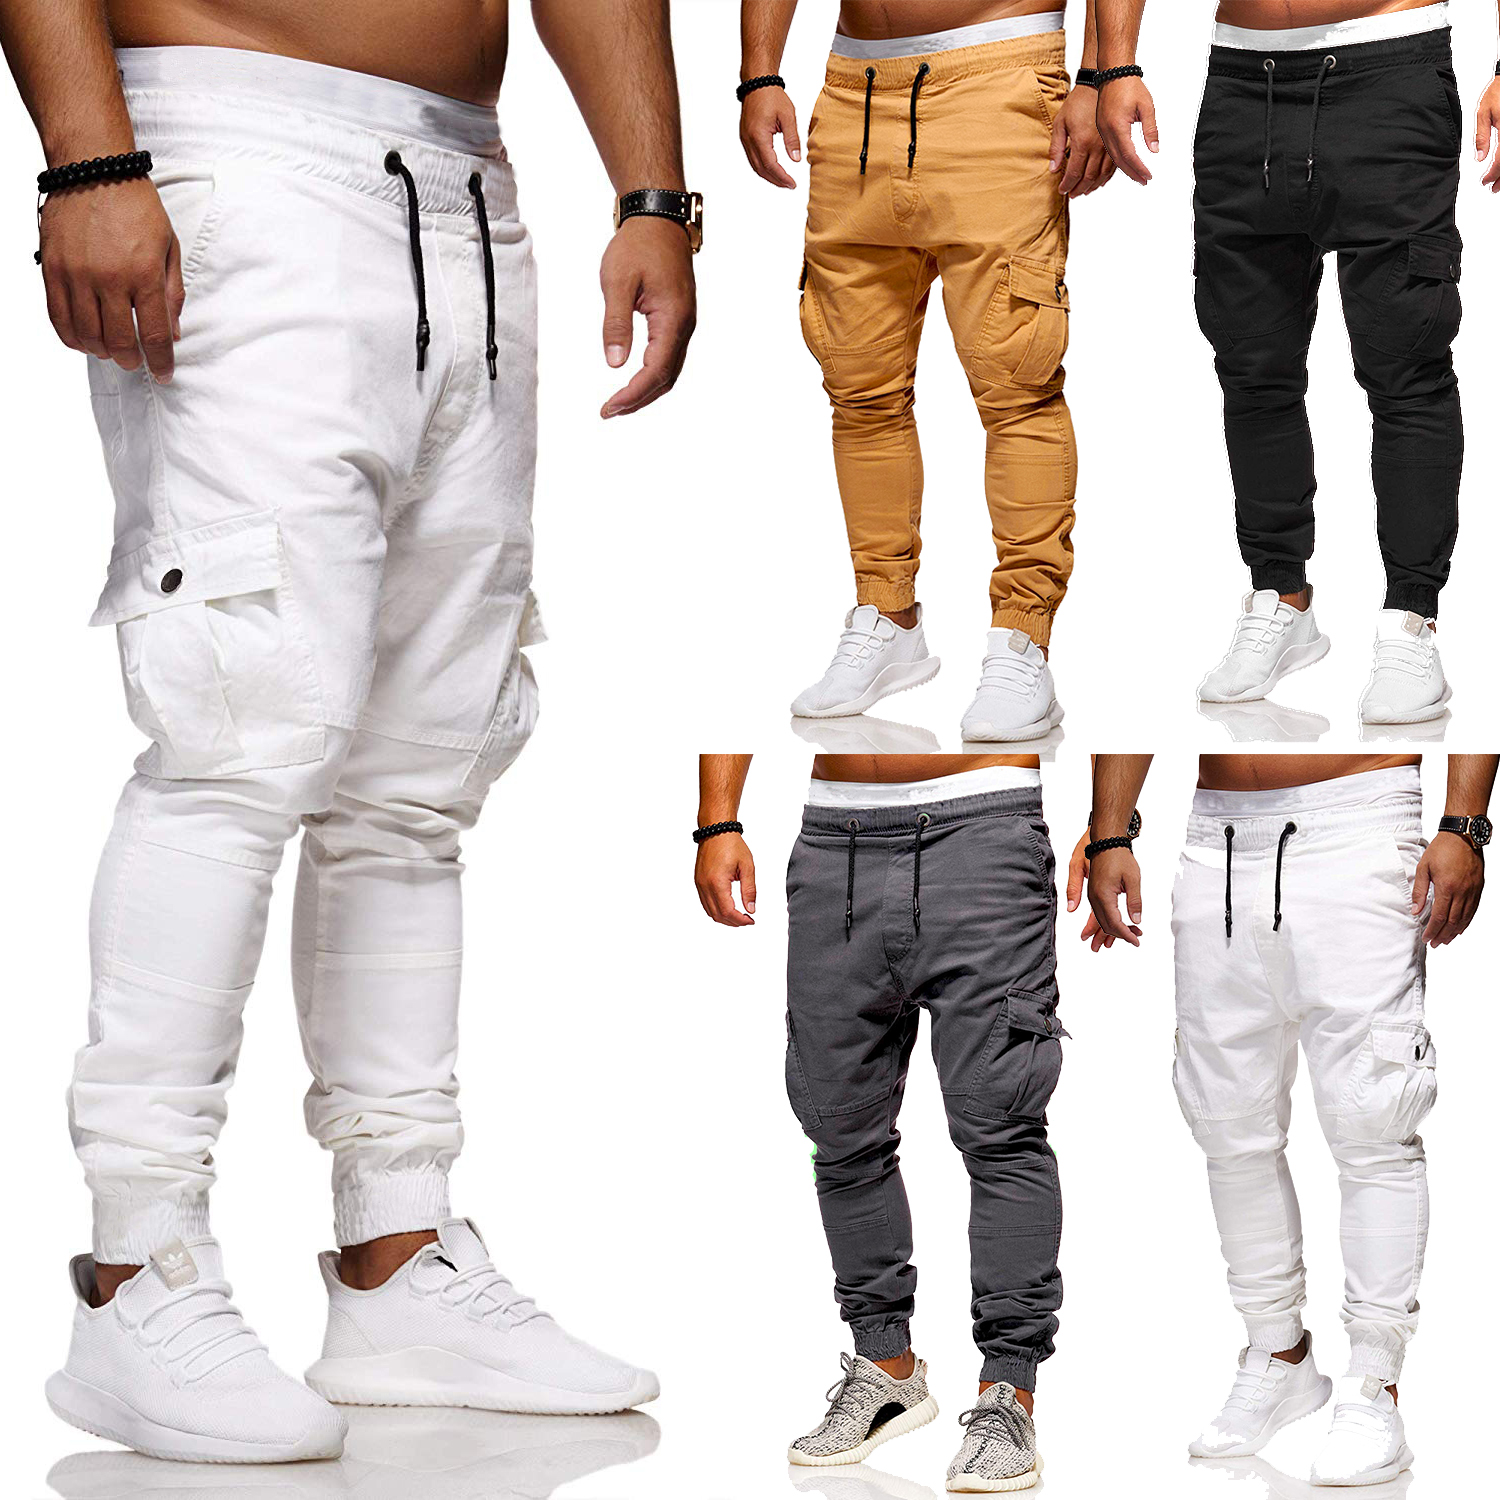 New Men's Casual Pants Fashion Boys' Athletic Pants Spring And Fall 2019 Men's Straight Tube High Quality Men's Jogging Pants